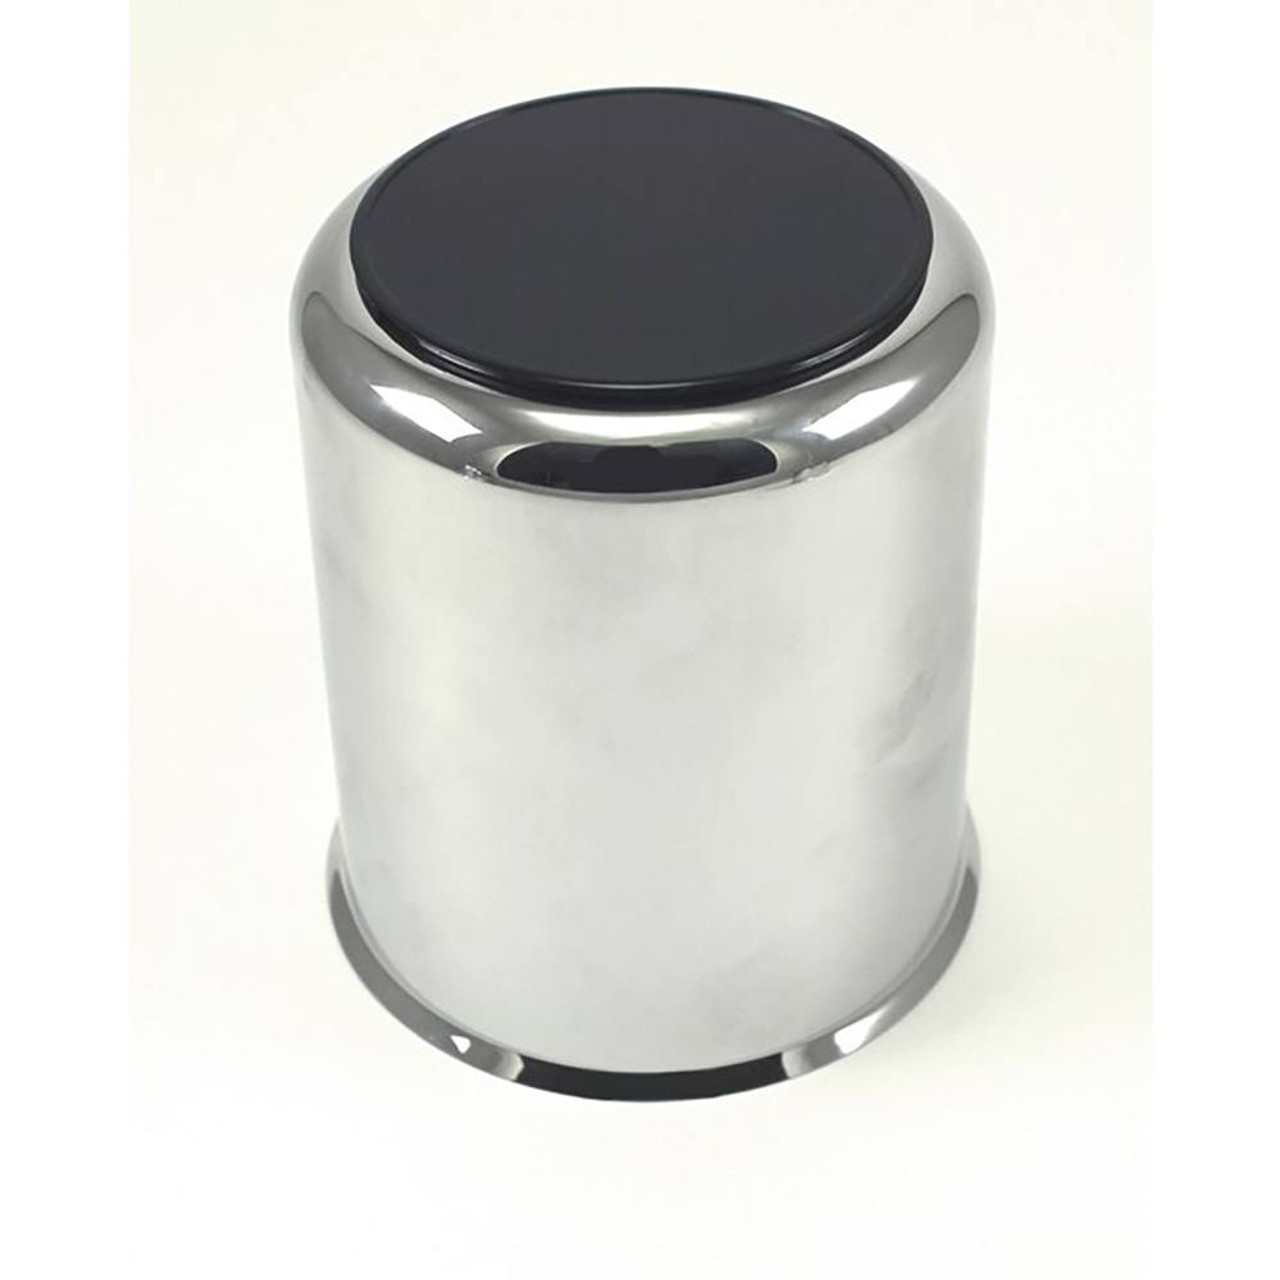 "3.75"" Plastic Chrome Center Cap with Black Plug CCS036"